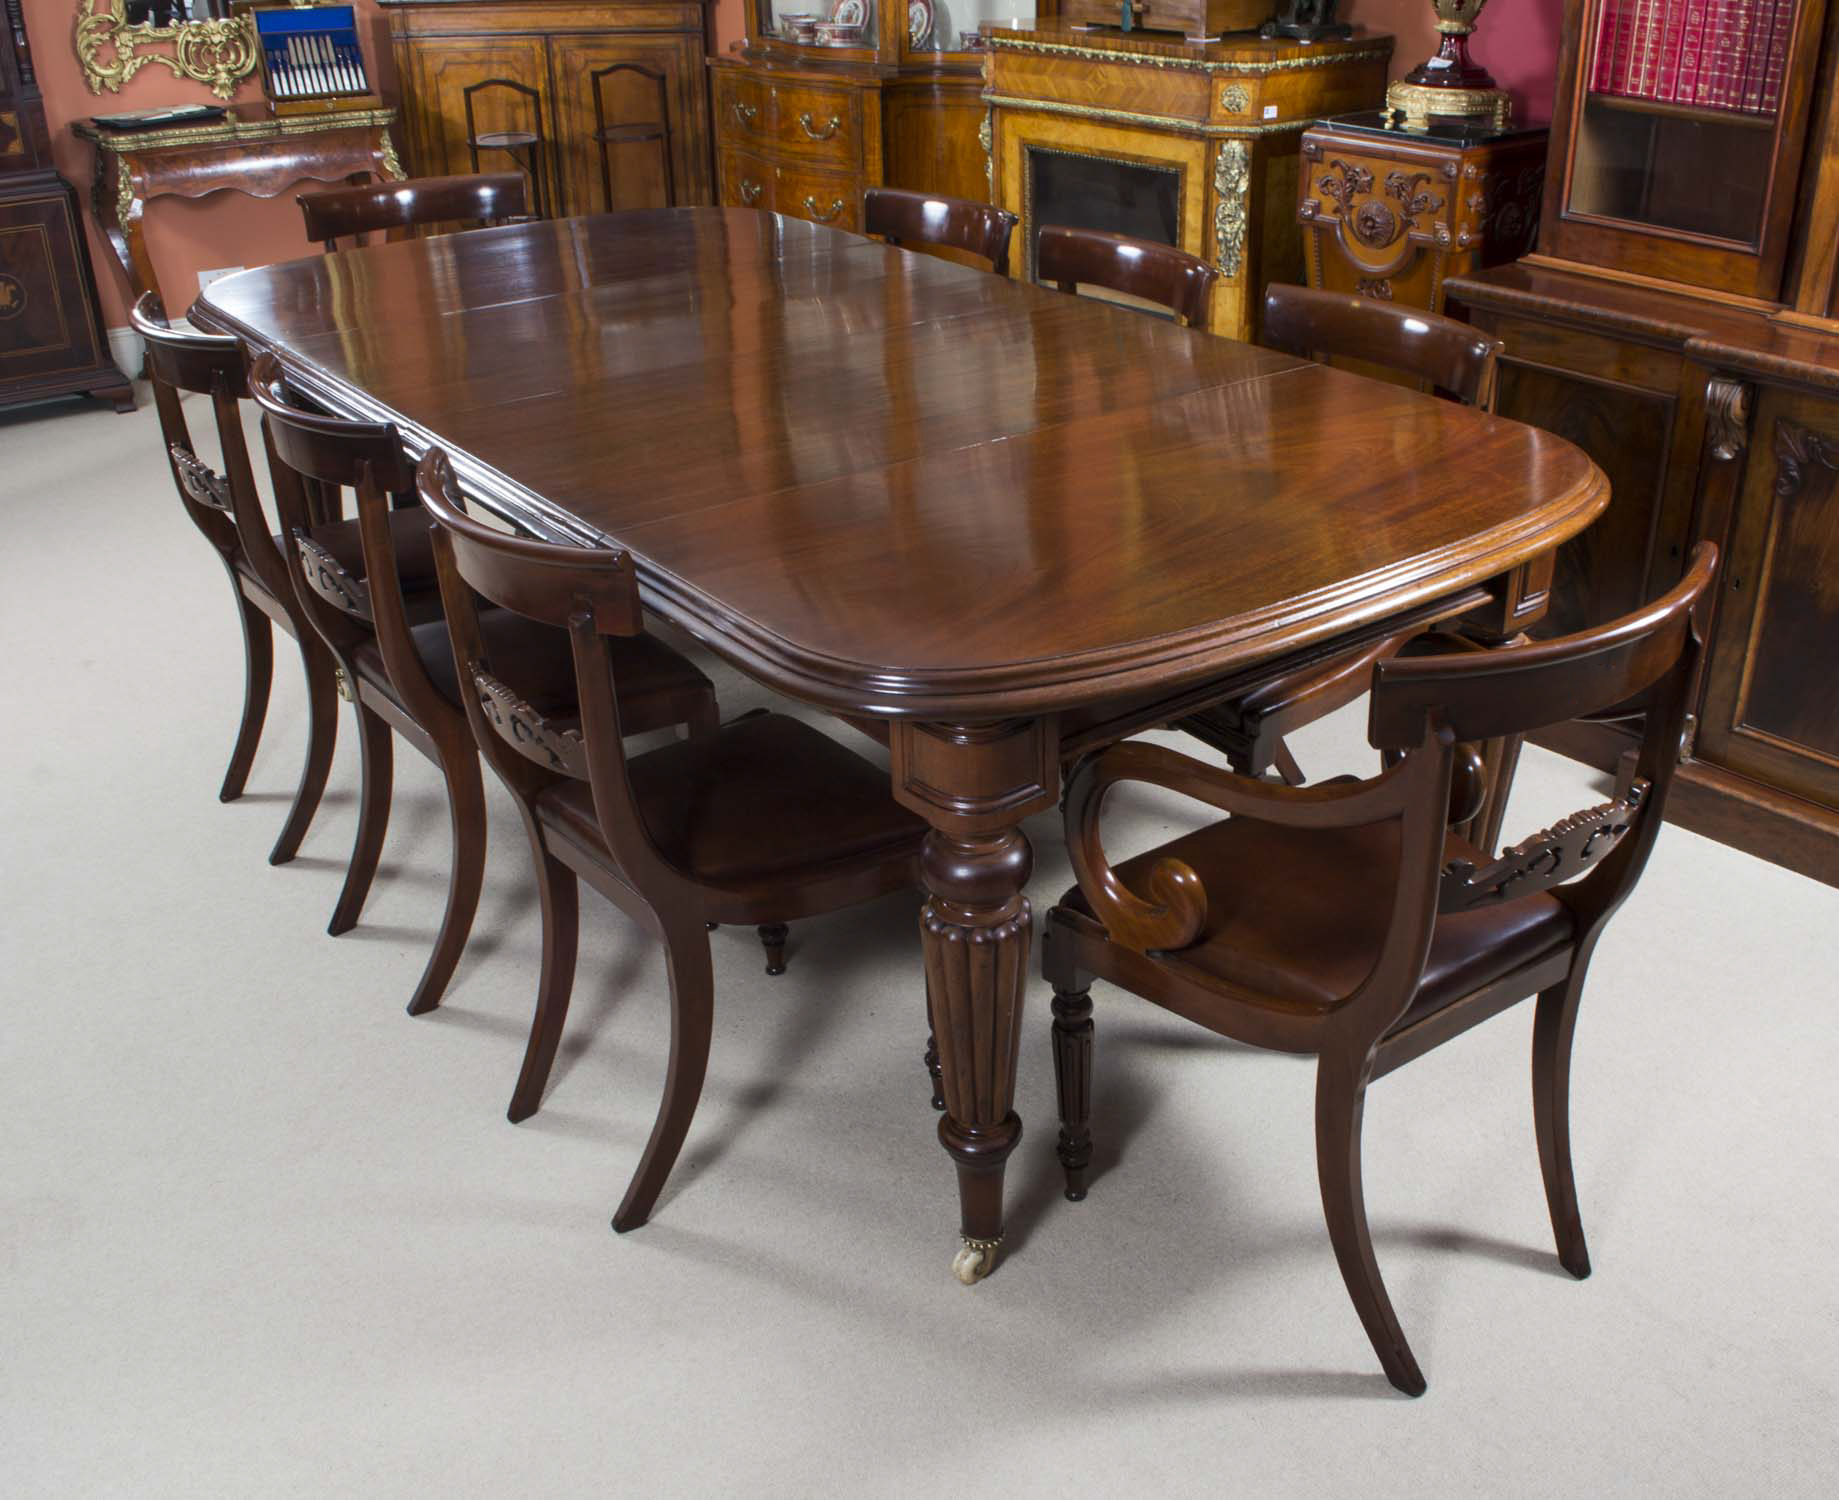 Antique Victorian Mahogany Dining Table 8 Regency chairs : 06608a Antique Victorian Mahogany Dining Table 8 Regency chairs 1 from www.regentantiques.com size 1839 x 1500 jpeg 792kB